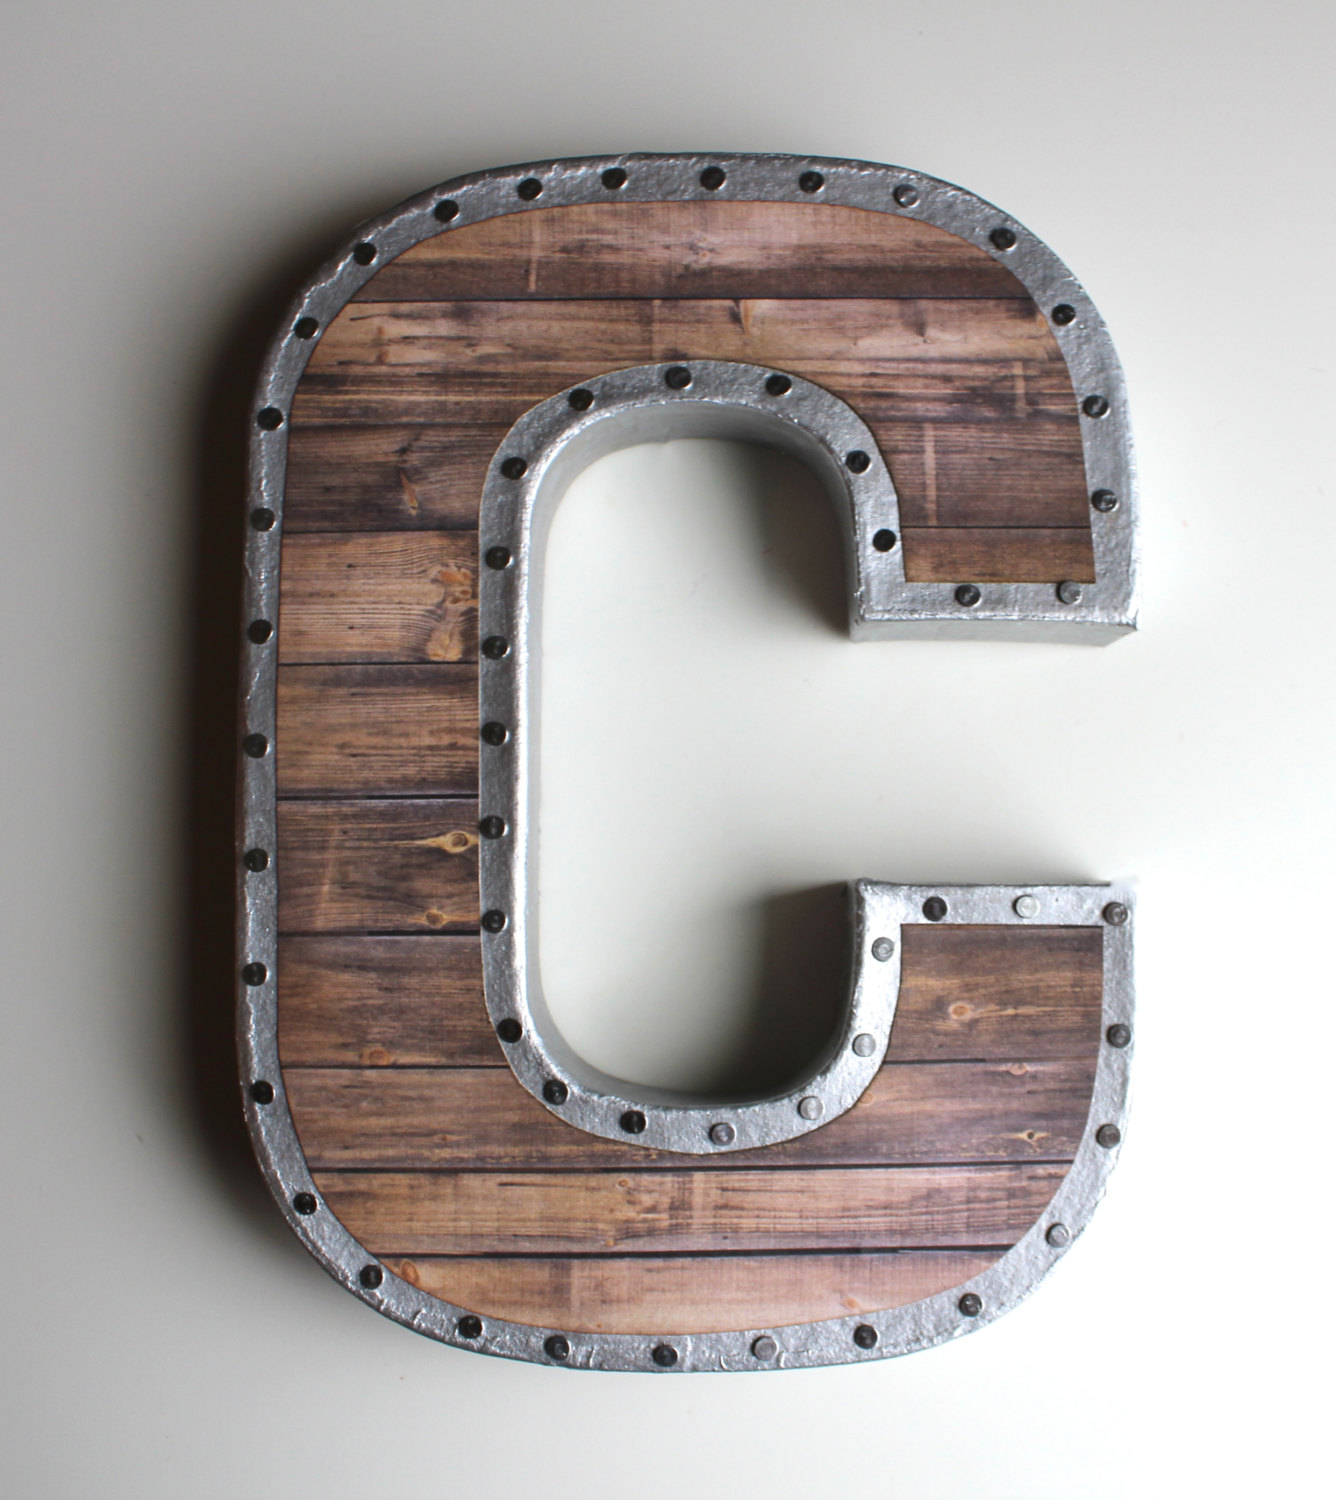 Large Monogram Letters Wall Decor With Large Scrabble Letters Wall Decor  Plus Large Wooden Letters For Wall Decor Together With Large Metal Letters  For Wall